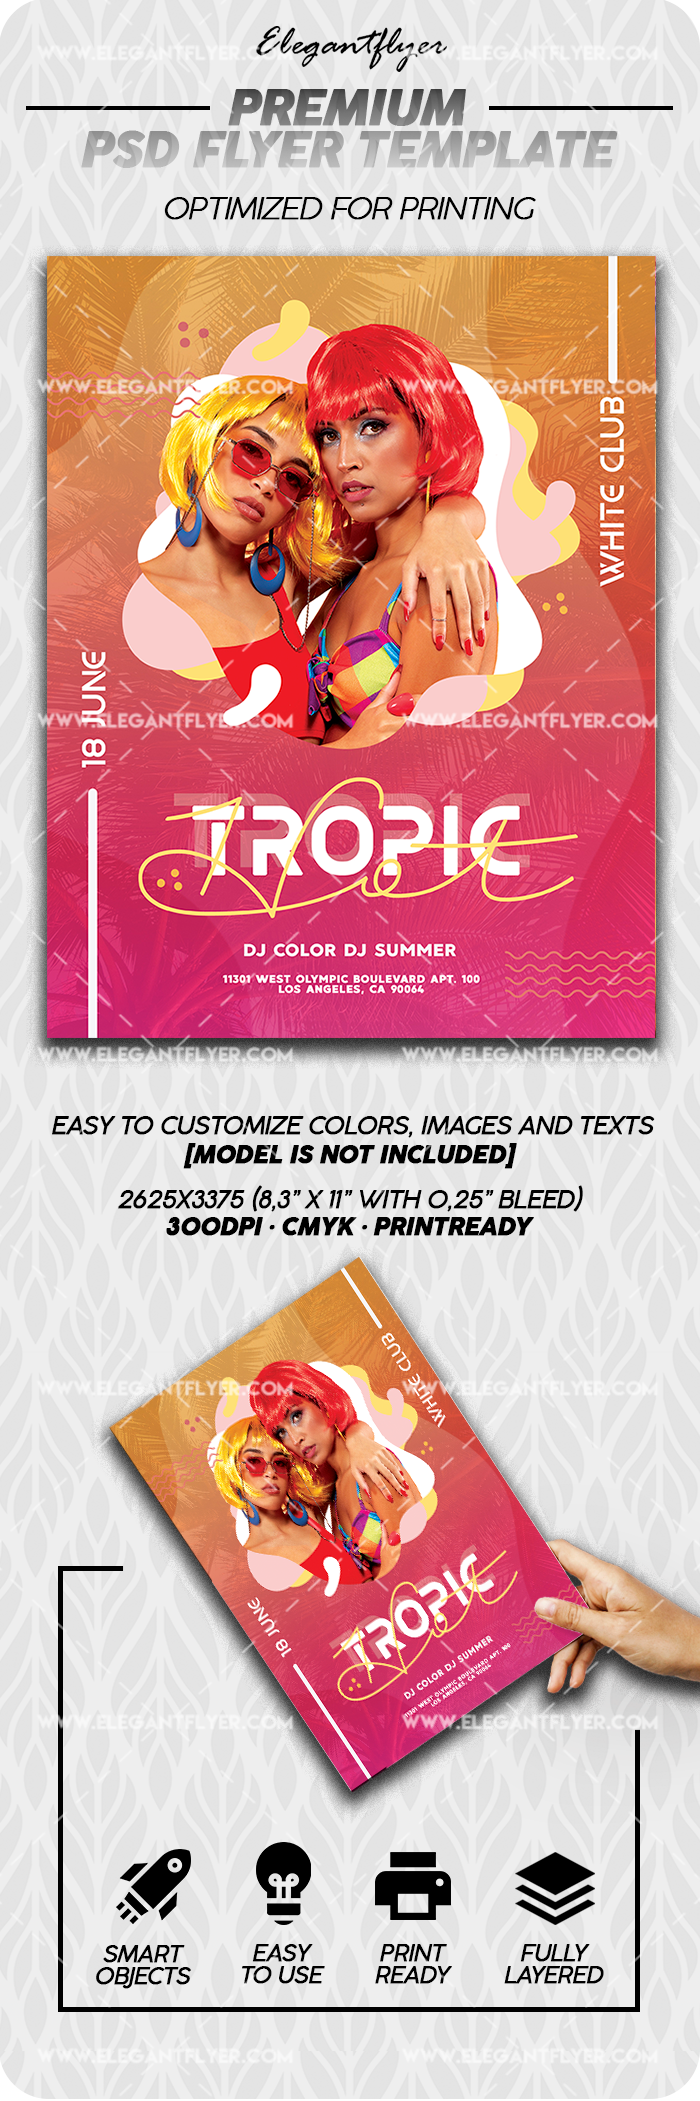 Hot Tropic – Premium PSD Flyer Template